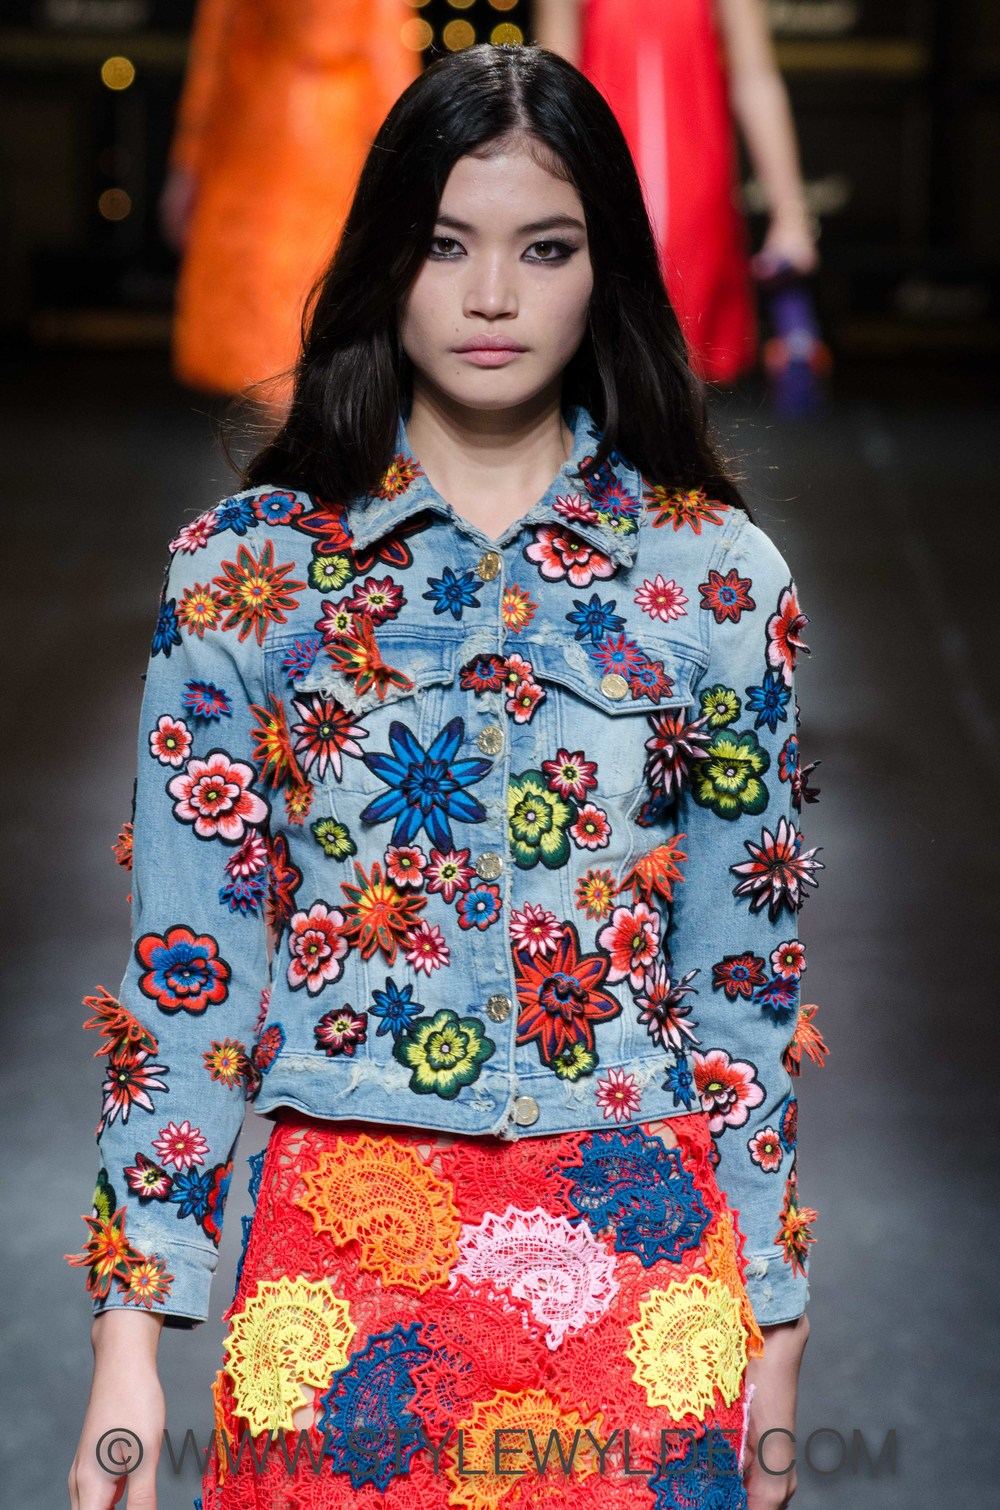 stylewylde_HouseofHolland_SS15 (47 of 68).jpg